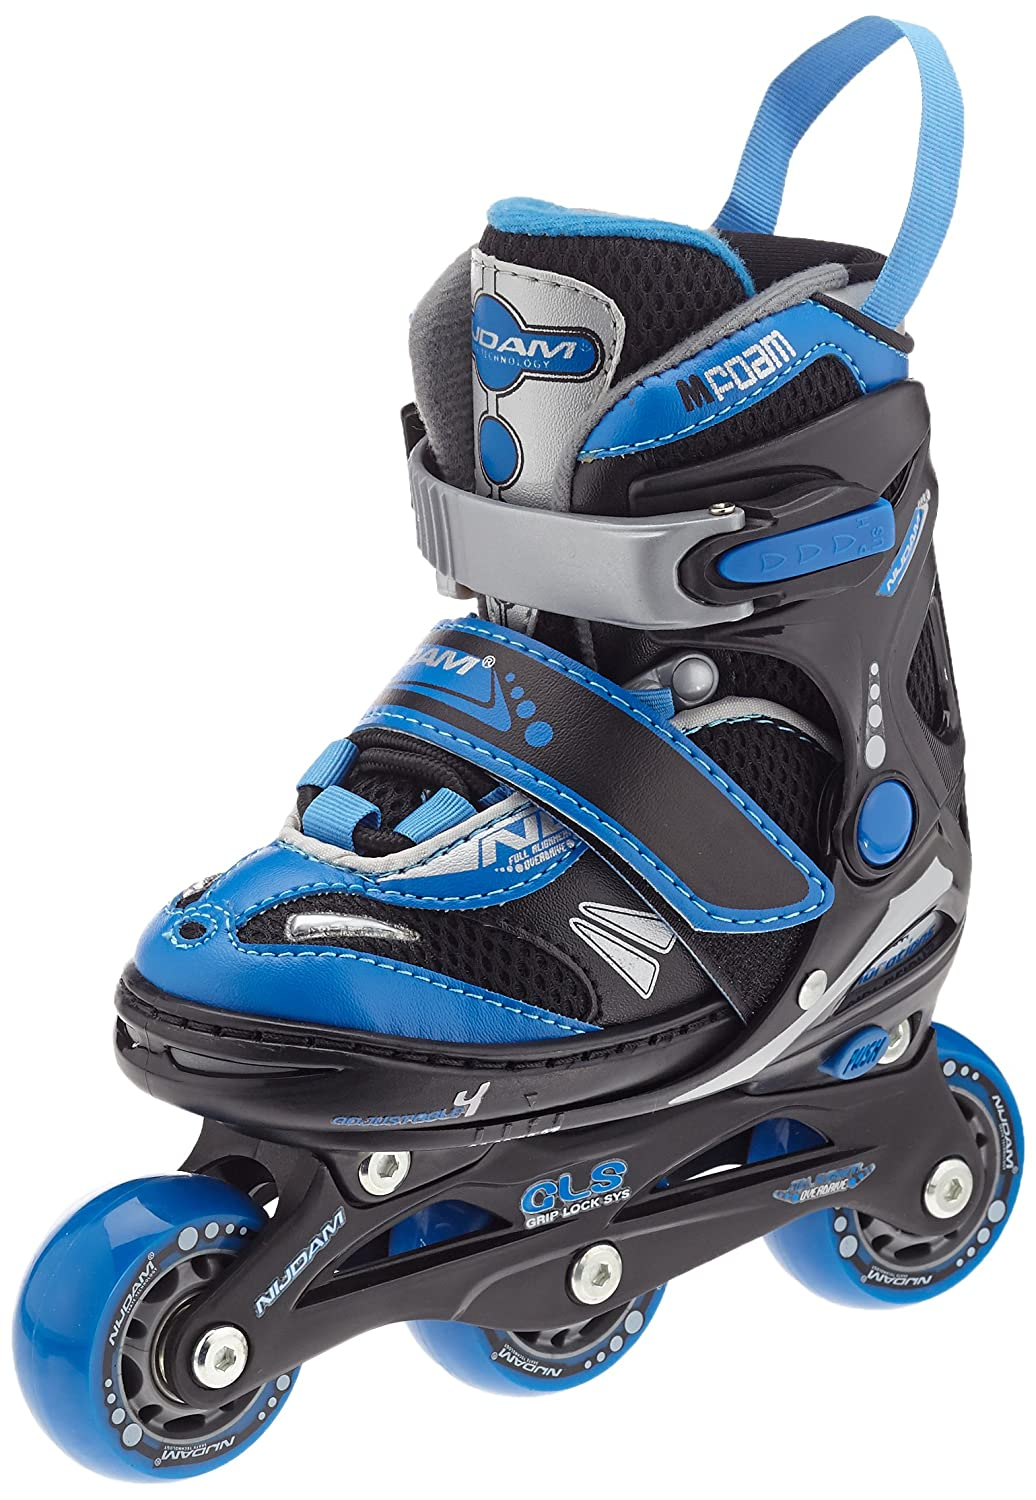 Nijdam Inlineskates Junior - Patines 1005617